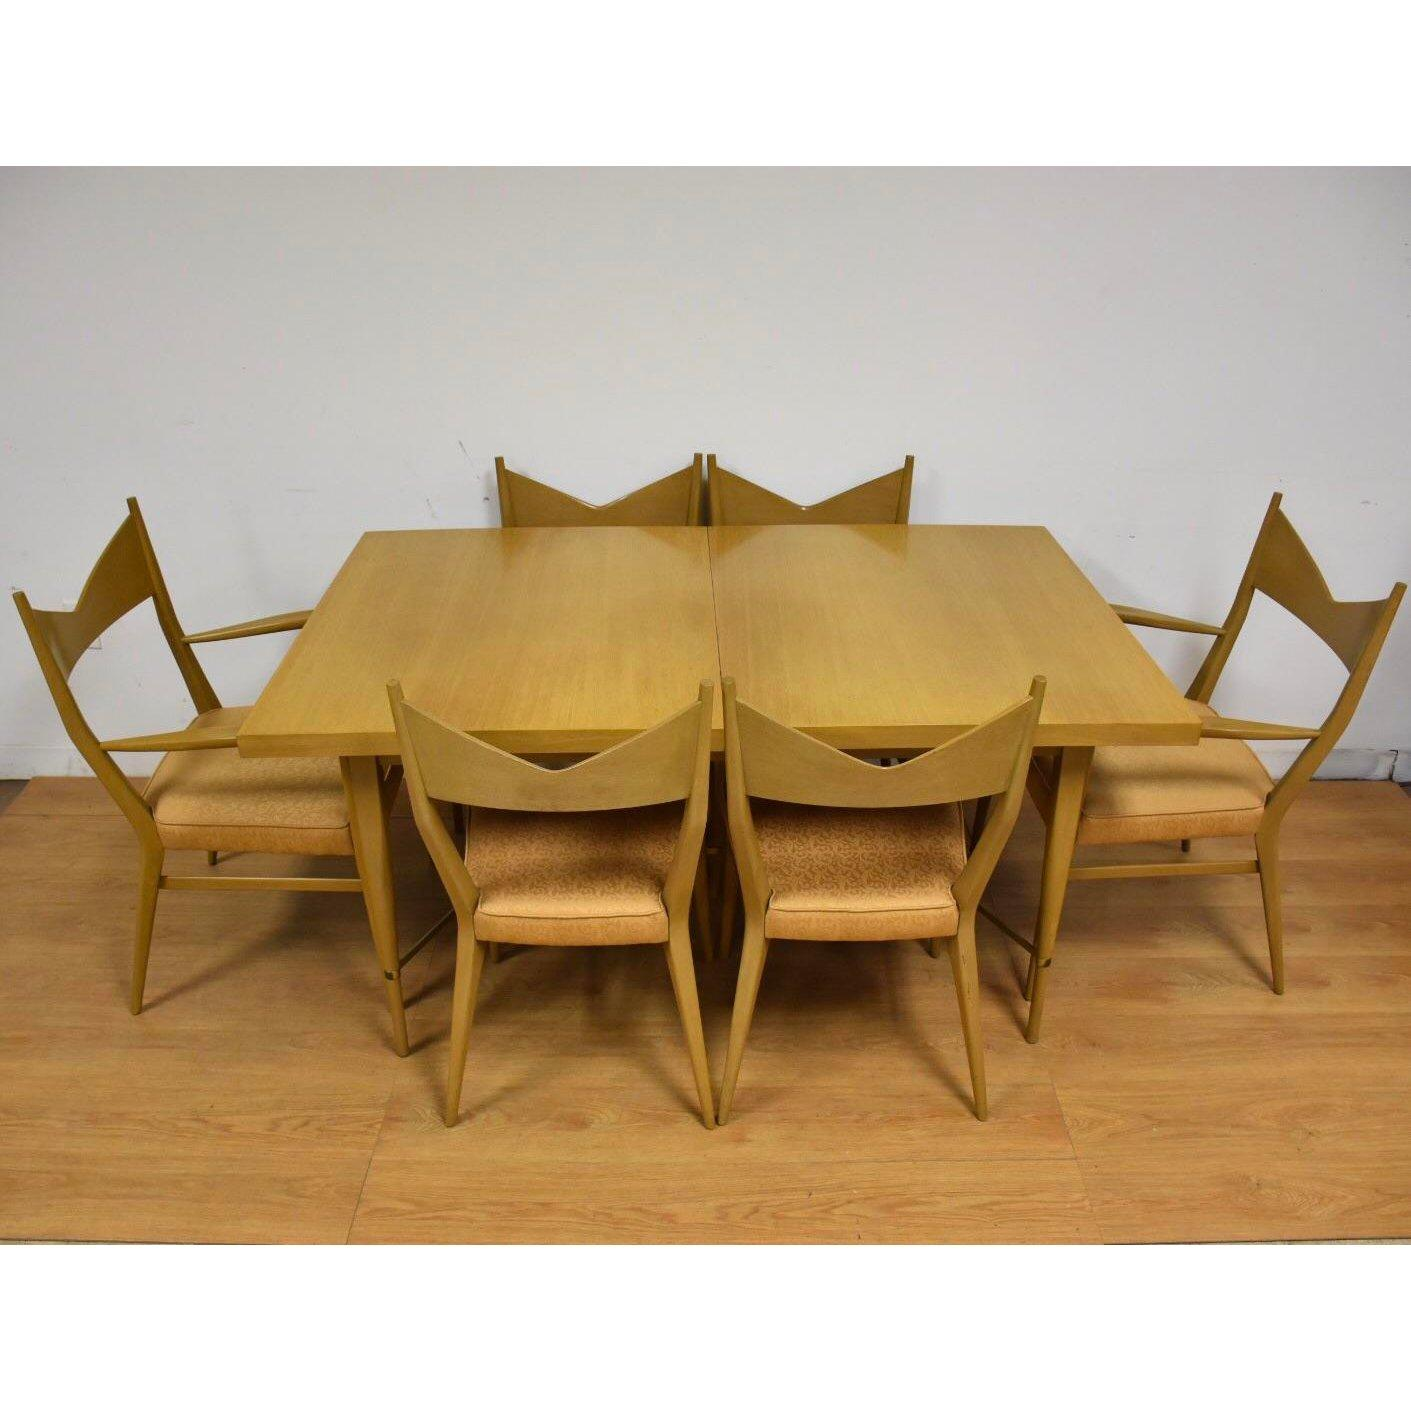 Paul Mccobb Chairs Dining Table And Chairs By Paul Mccobb Set Of 7